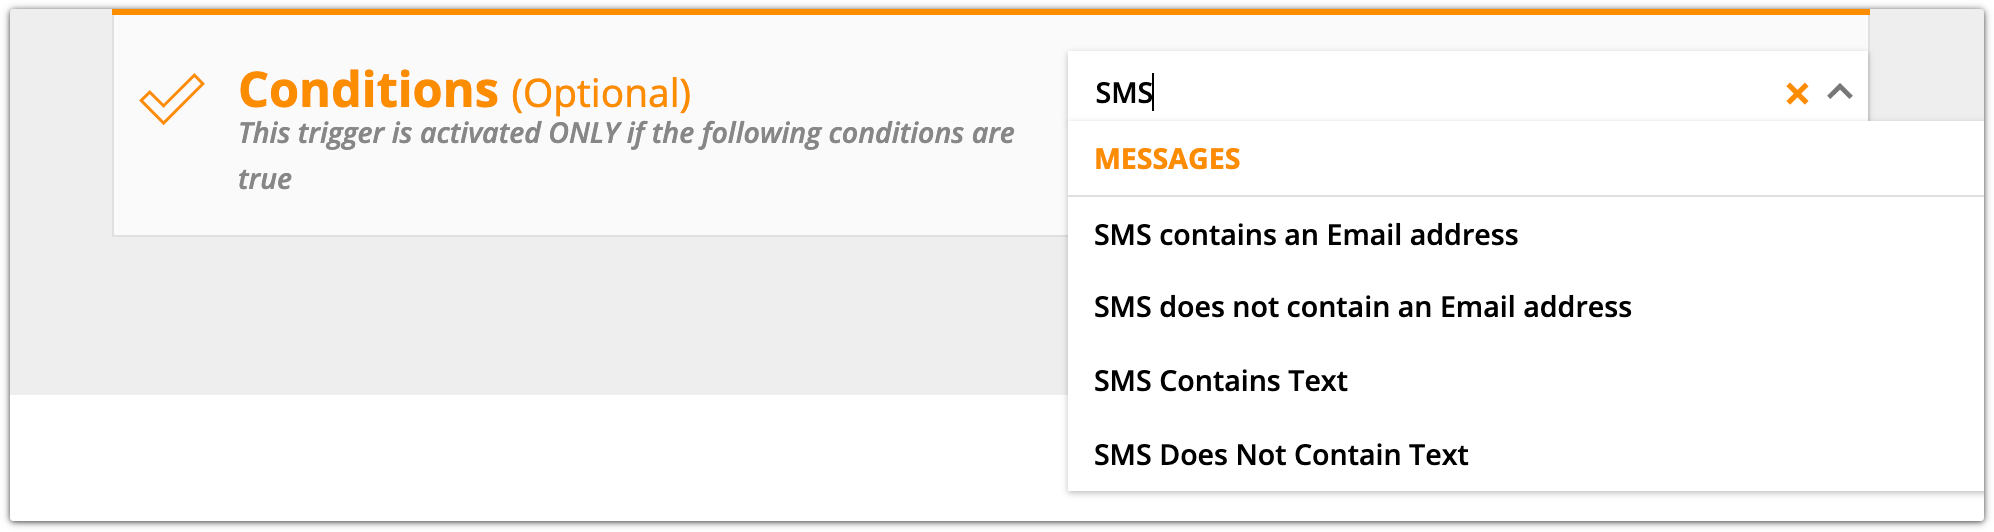 SMS trigger condition example